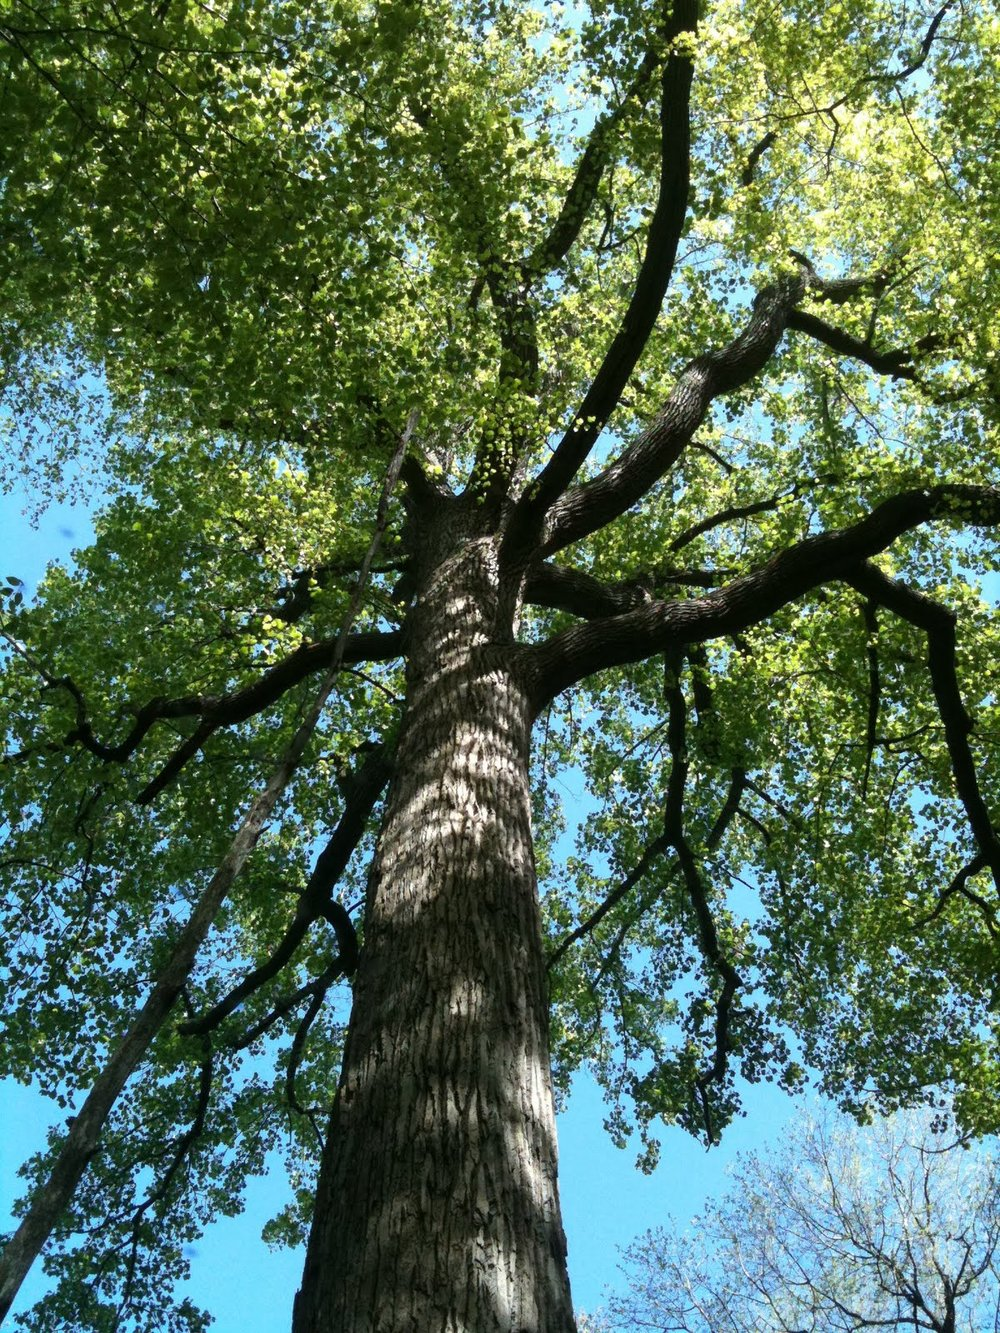 5-13-11 004 Oak at Eno Marsh.jpg